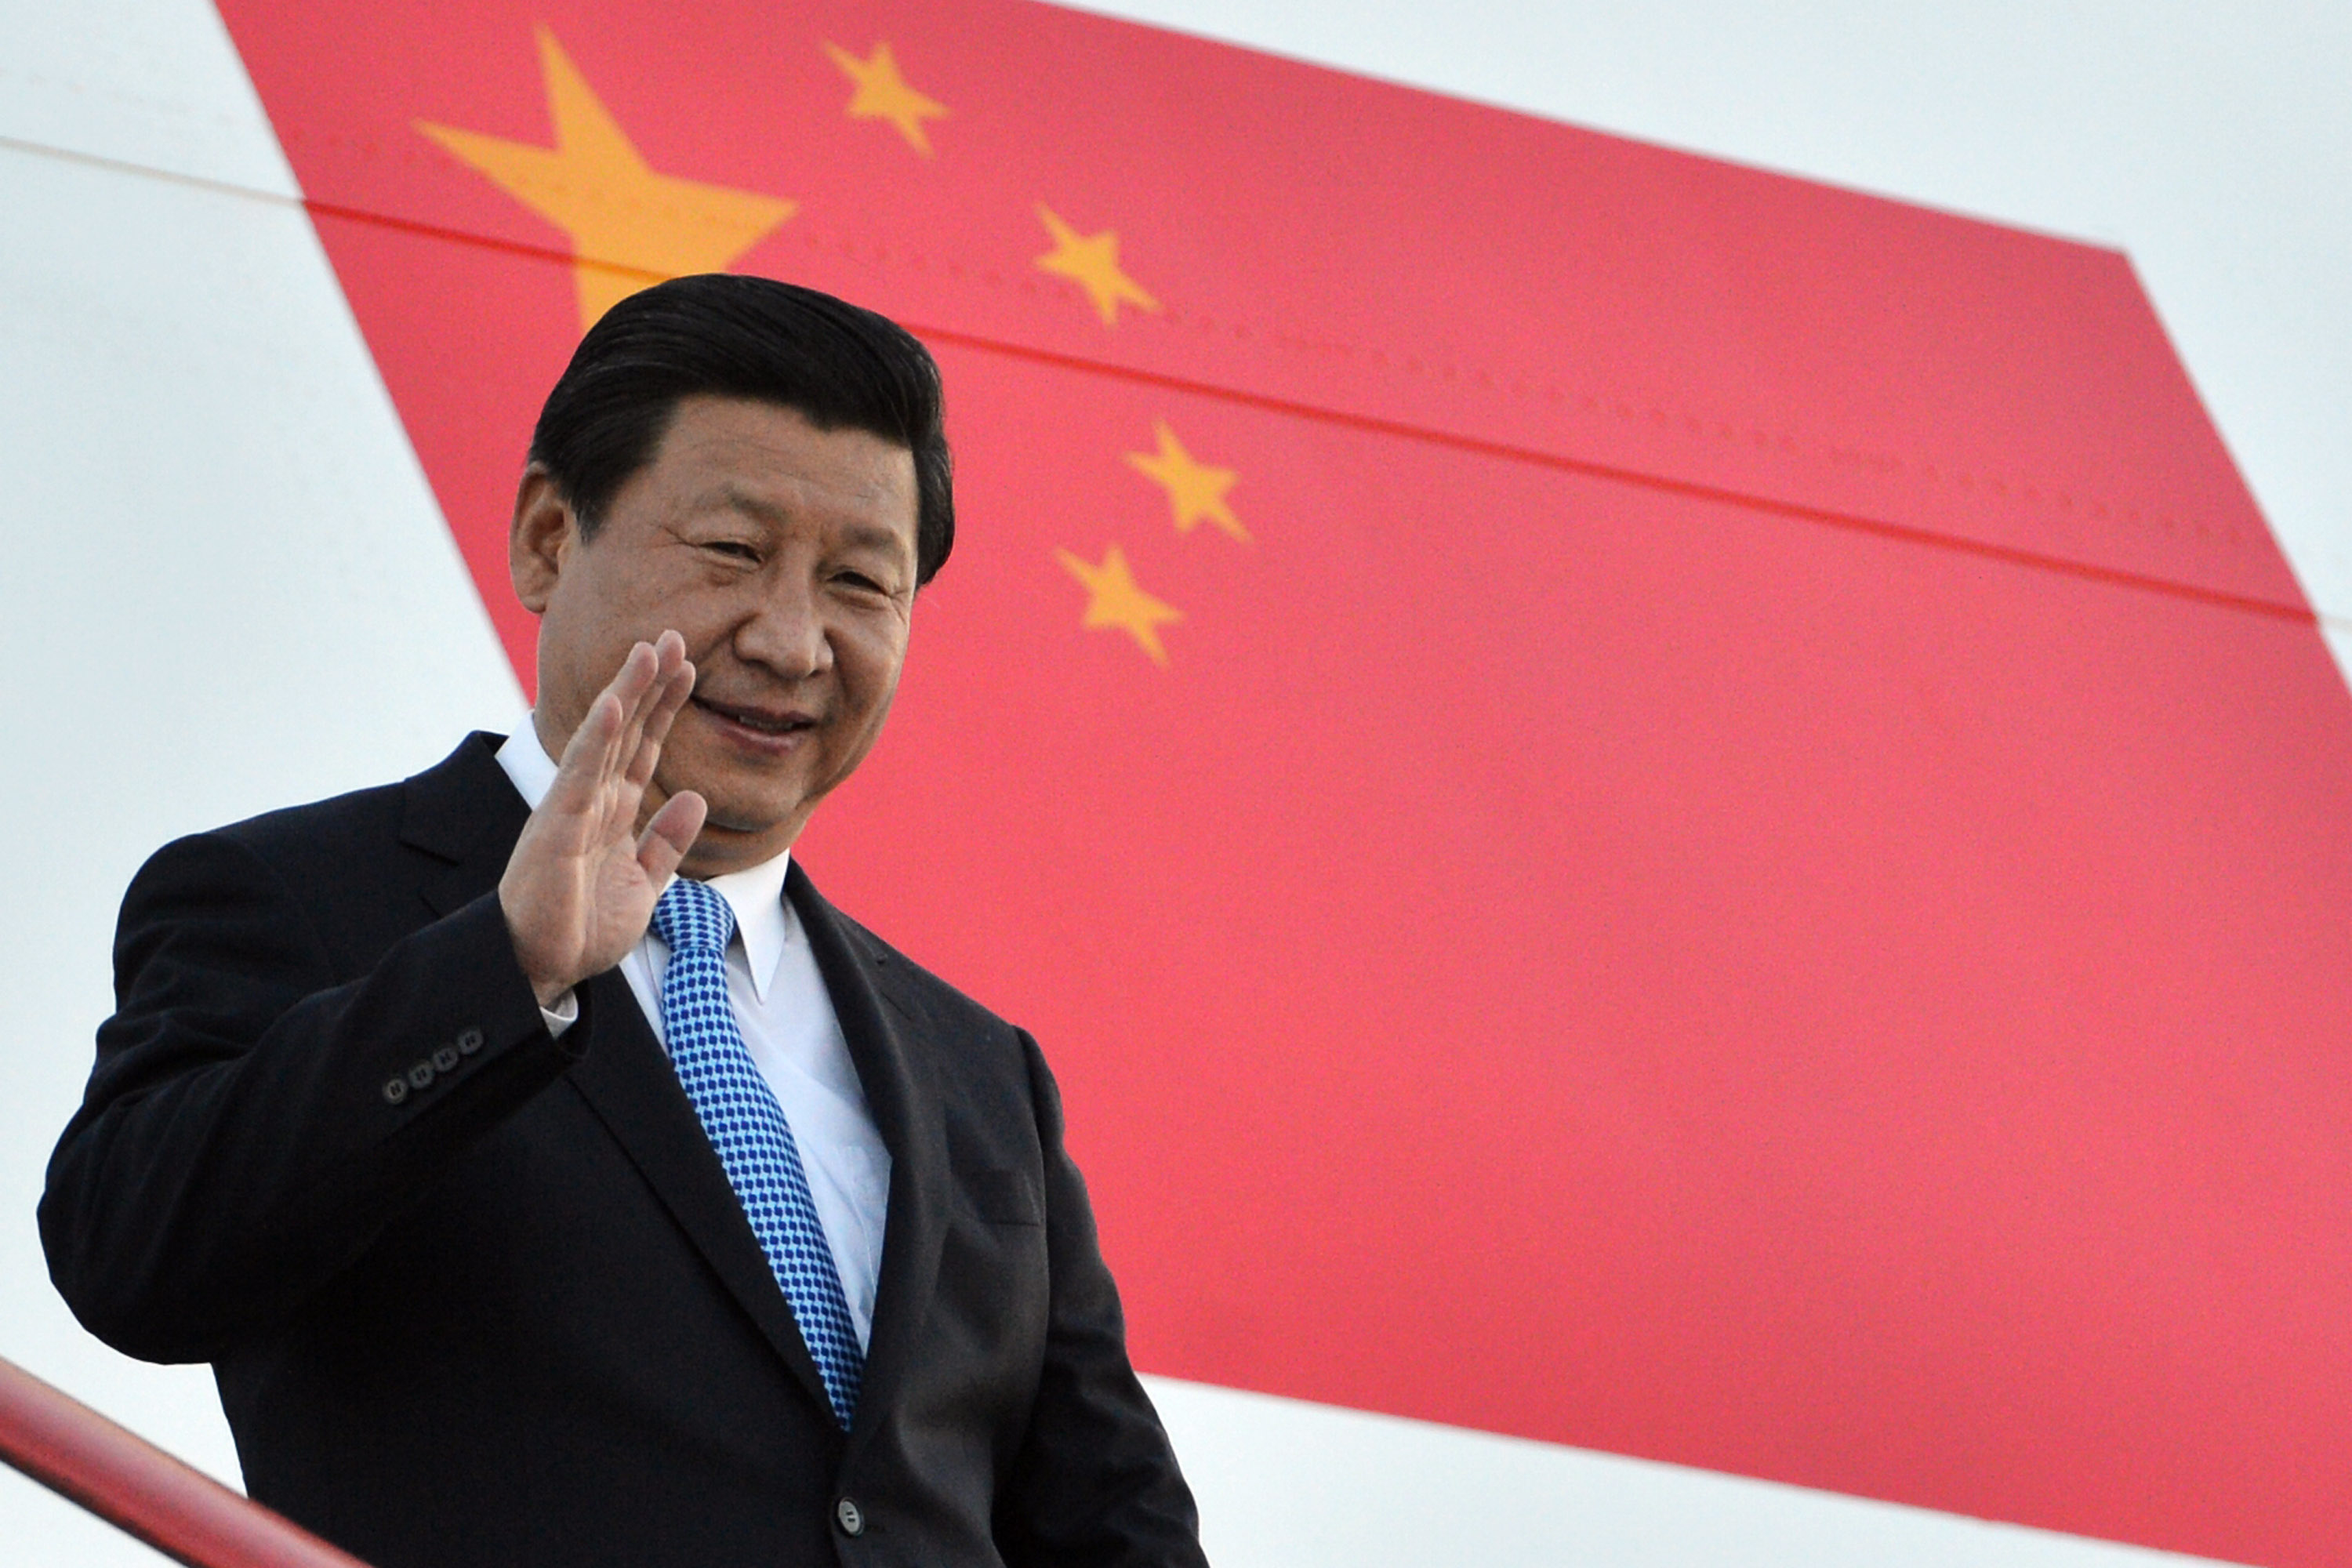 In this handout image provided by Ria Novosti, President of the People's Republic of China Xi Jinping arrives in Russia ahead of the G20 summit on September 4, 2013 in St. Petersburg, Russia.